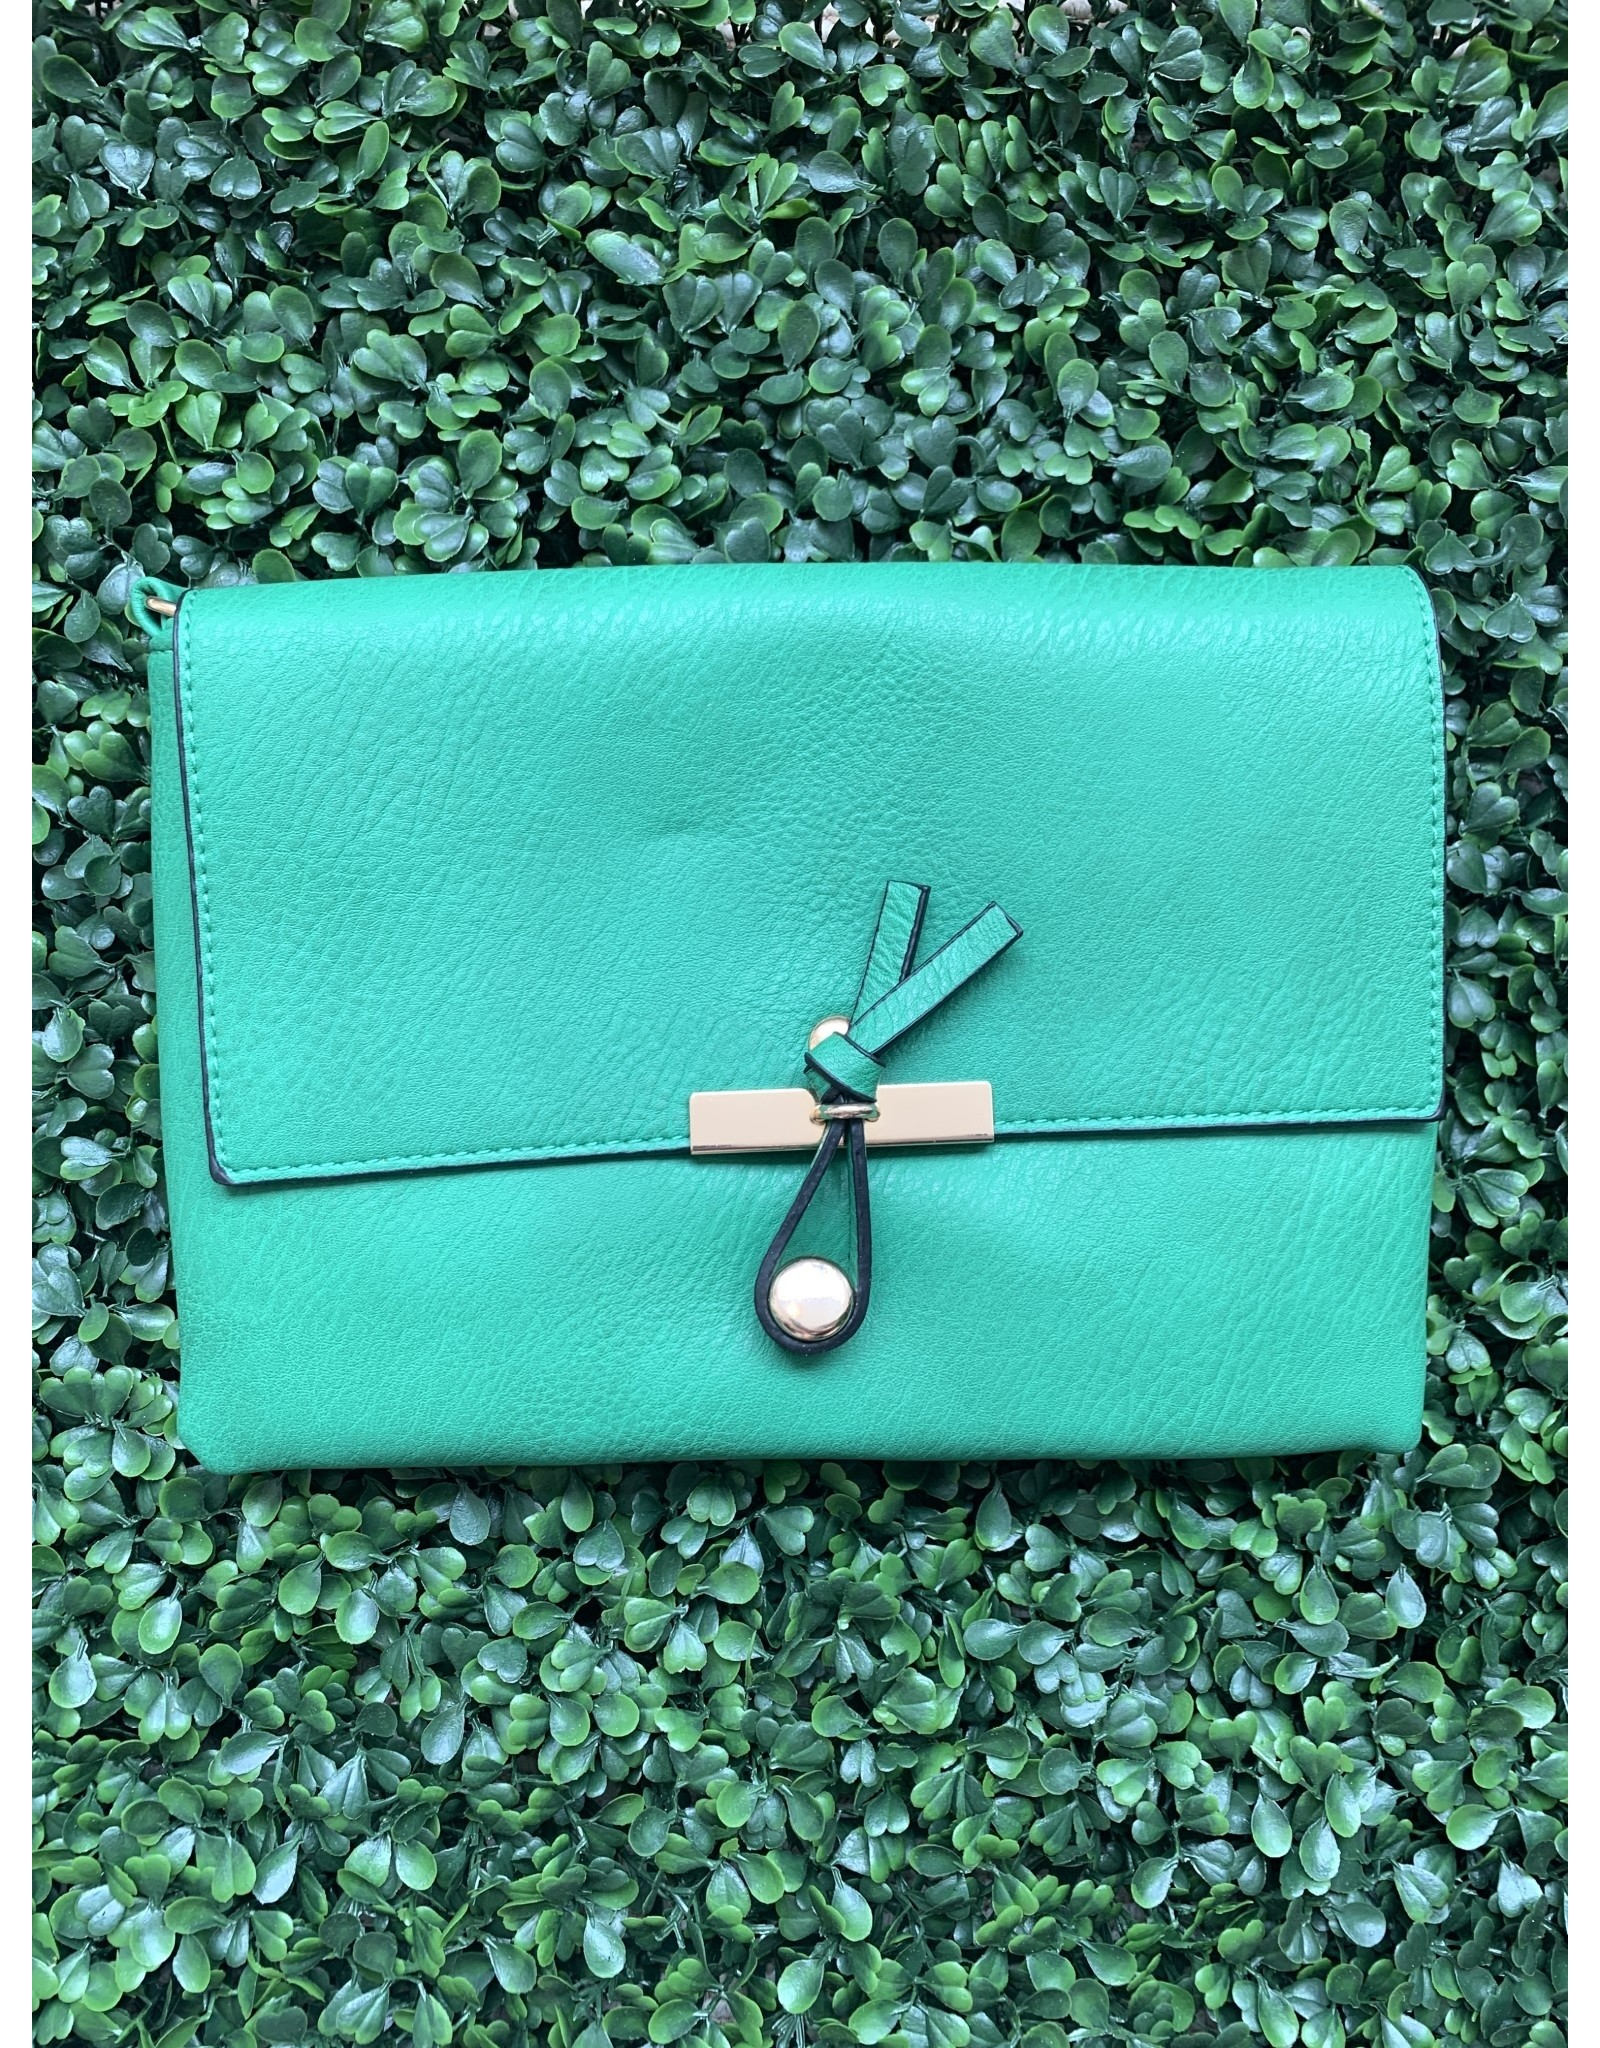 The Everyday Crossbody Small in Green